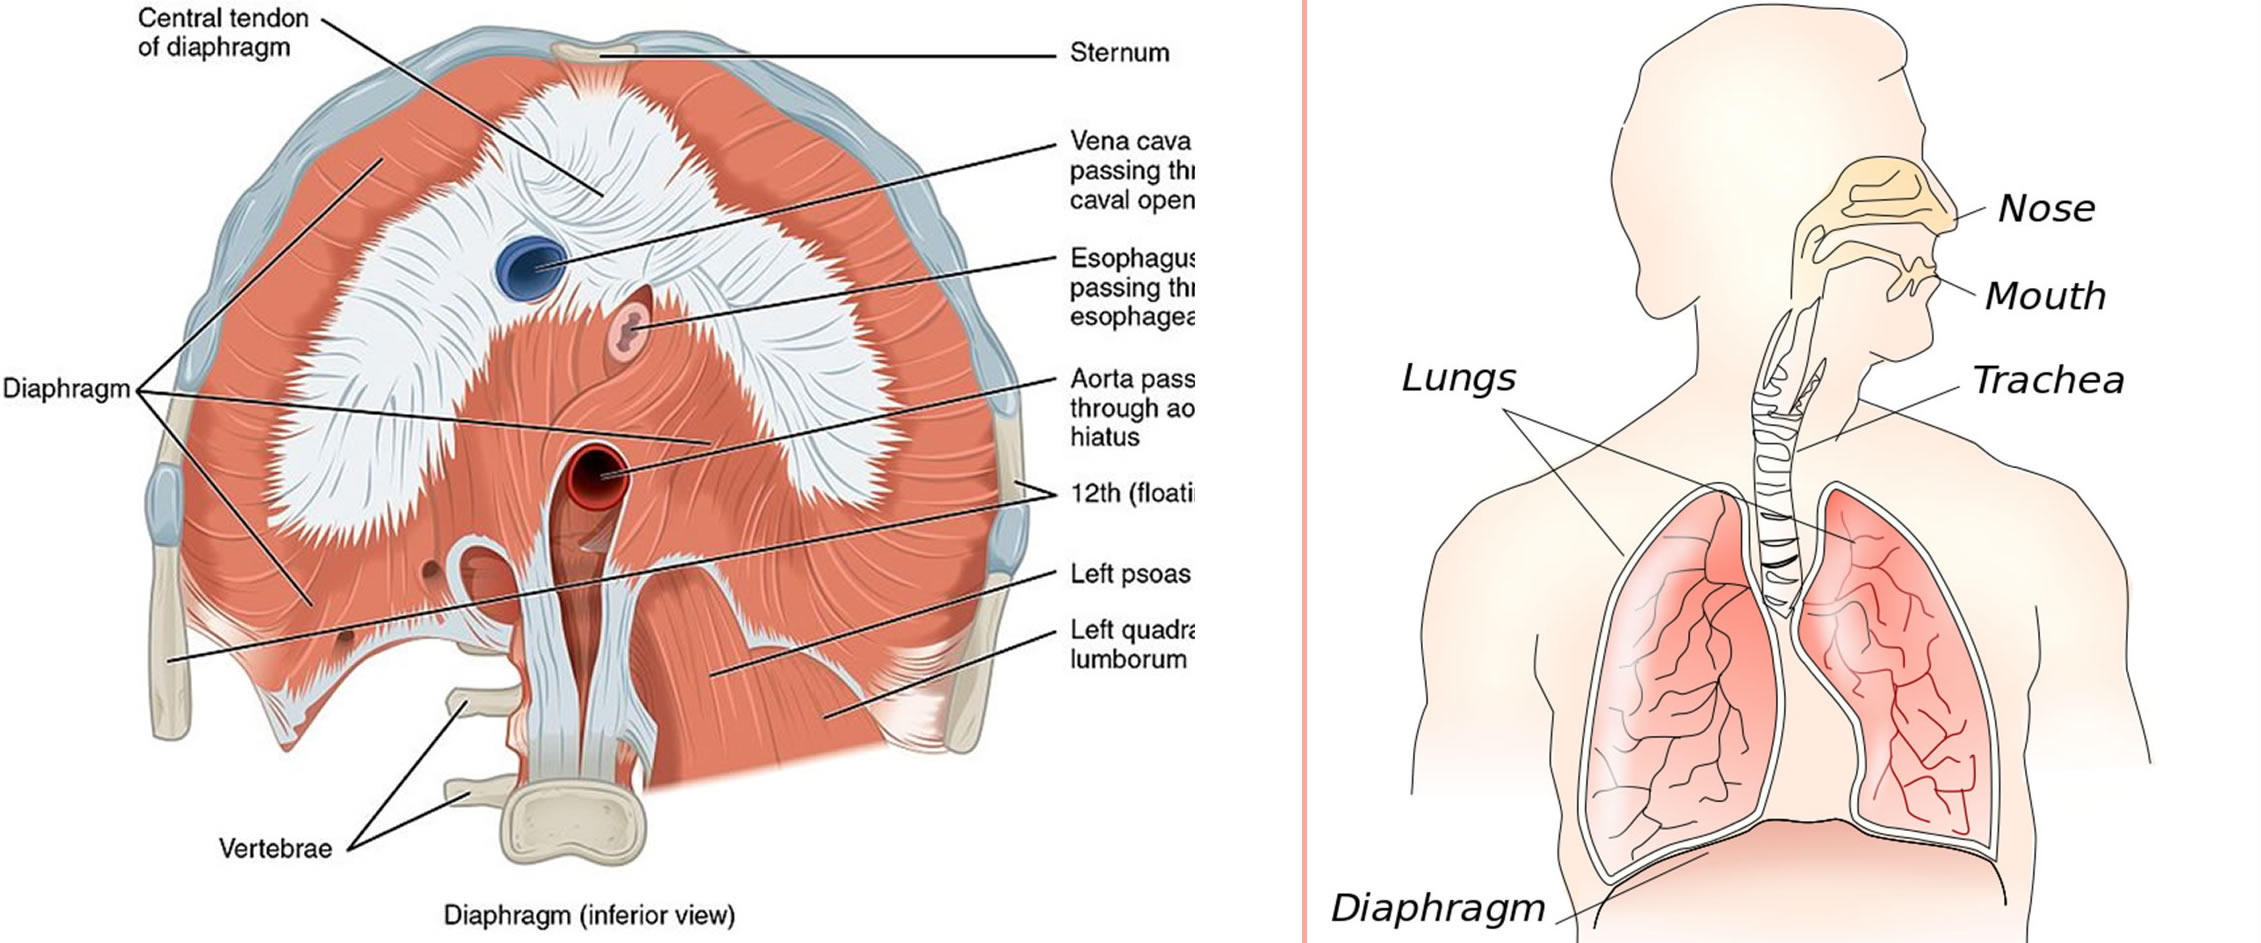 endometriosis-of-the-lungs-chest-diaphragm-upper-abdomen